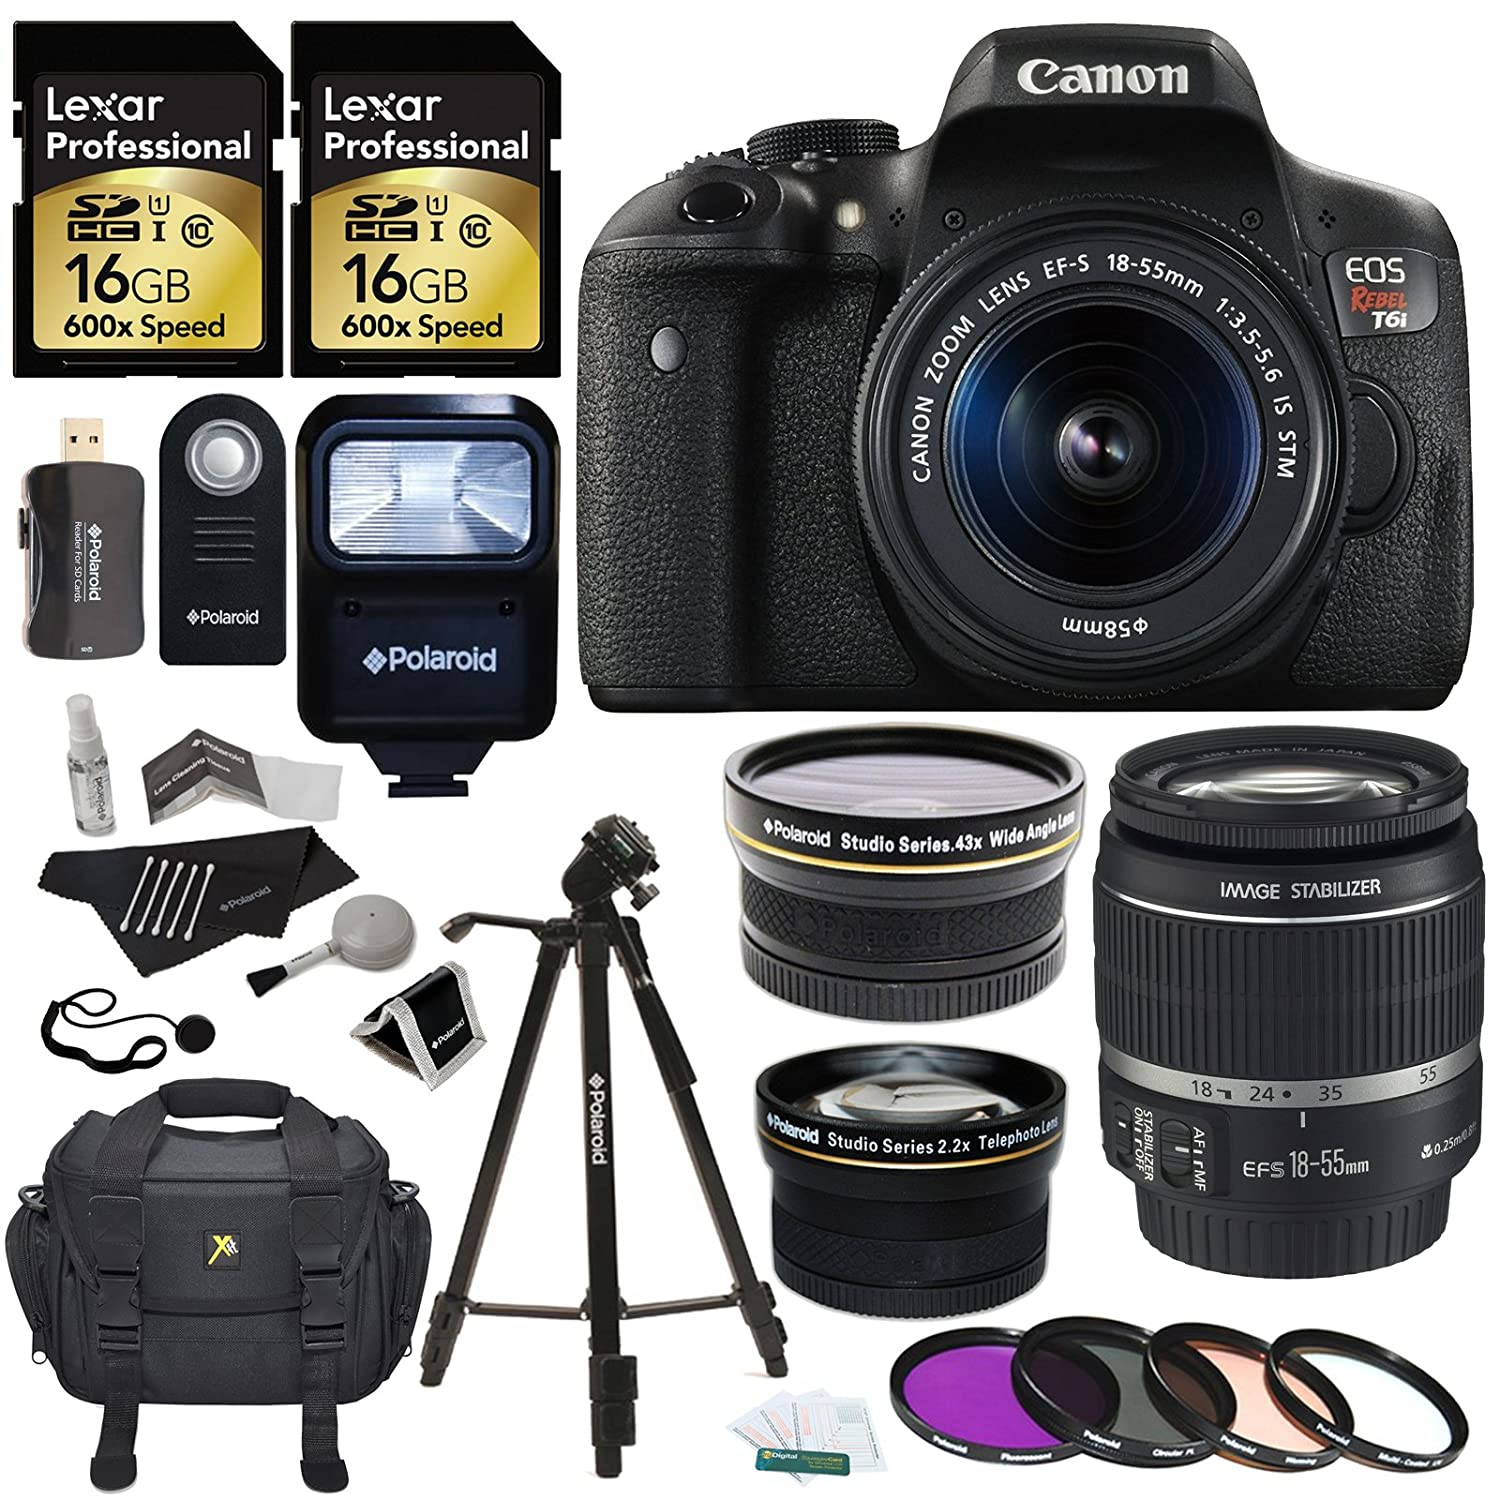 Canon EOS Rebel T6i 24.2 MP Digital SLR Camera with 18-55mm f/3.5-5.6 STM Lens + Polaroid Studio Series .43x High Definition Wide Angle Lens  ..